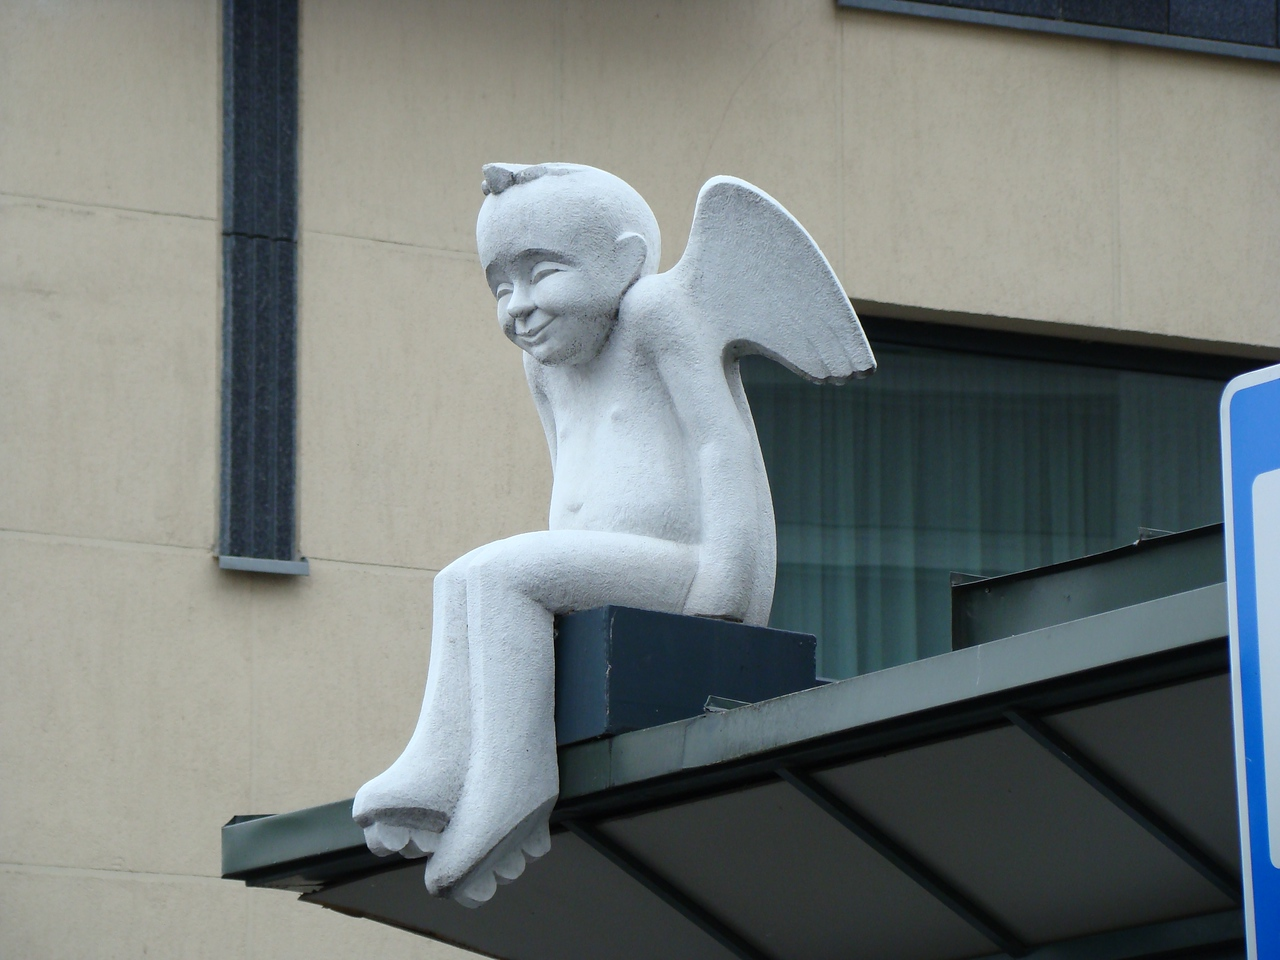 Figure above Bus Stop